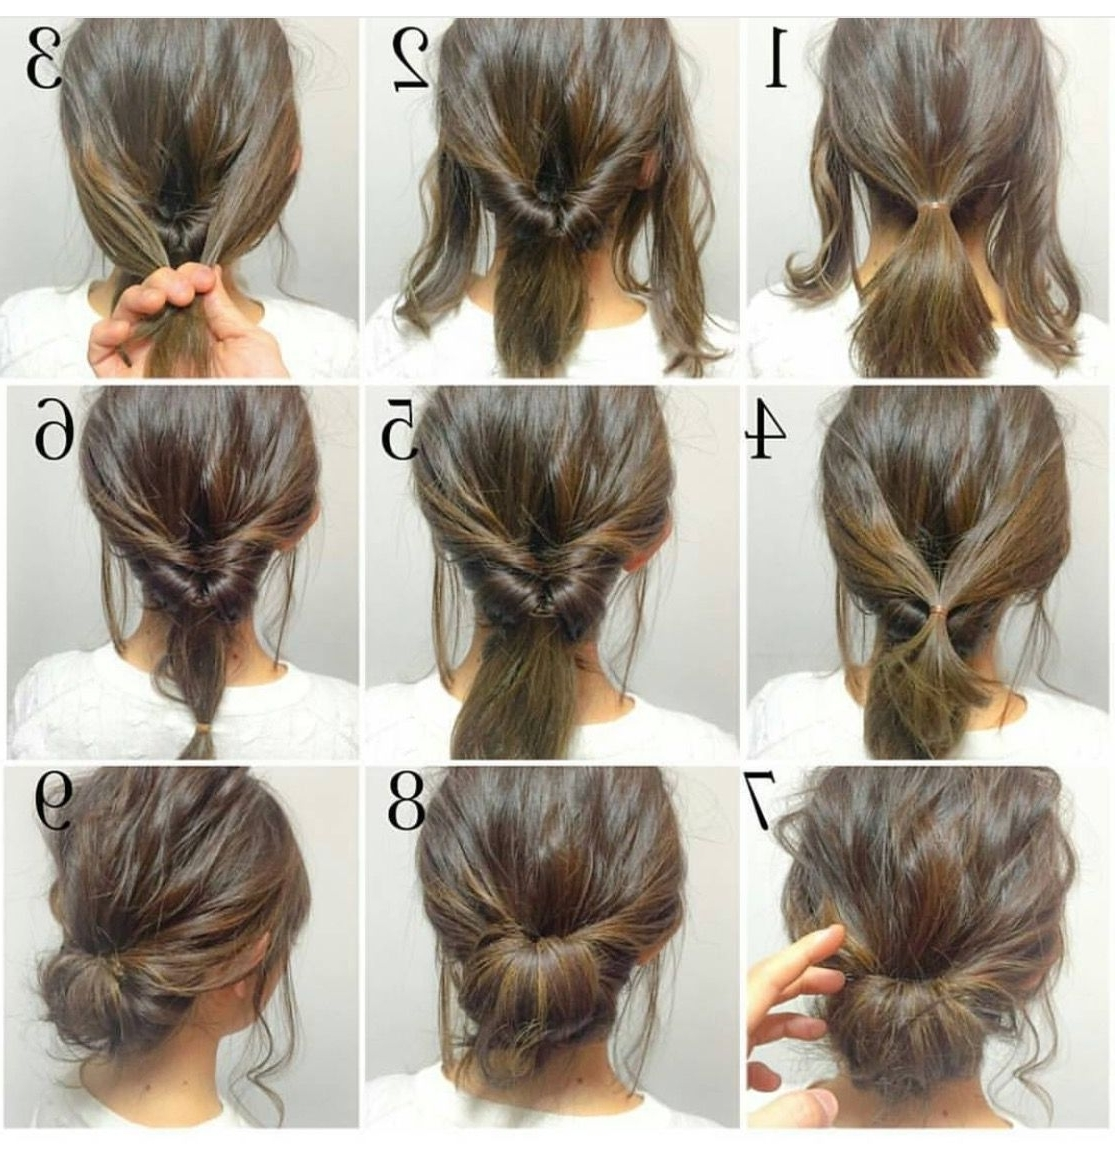 4 Messy Updos For Long Hair | Hairz | Pinterest | Updos, Hair Style With Regard To Cute Updos For Long Hair (View 6 of 15)